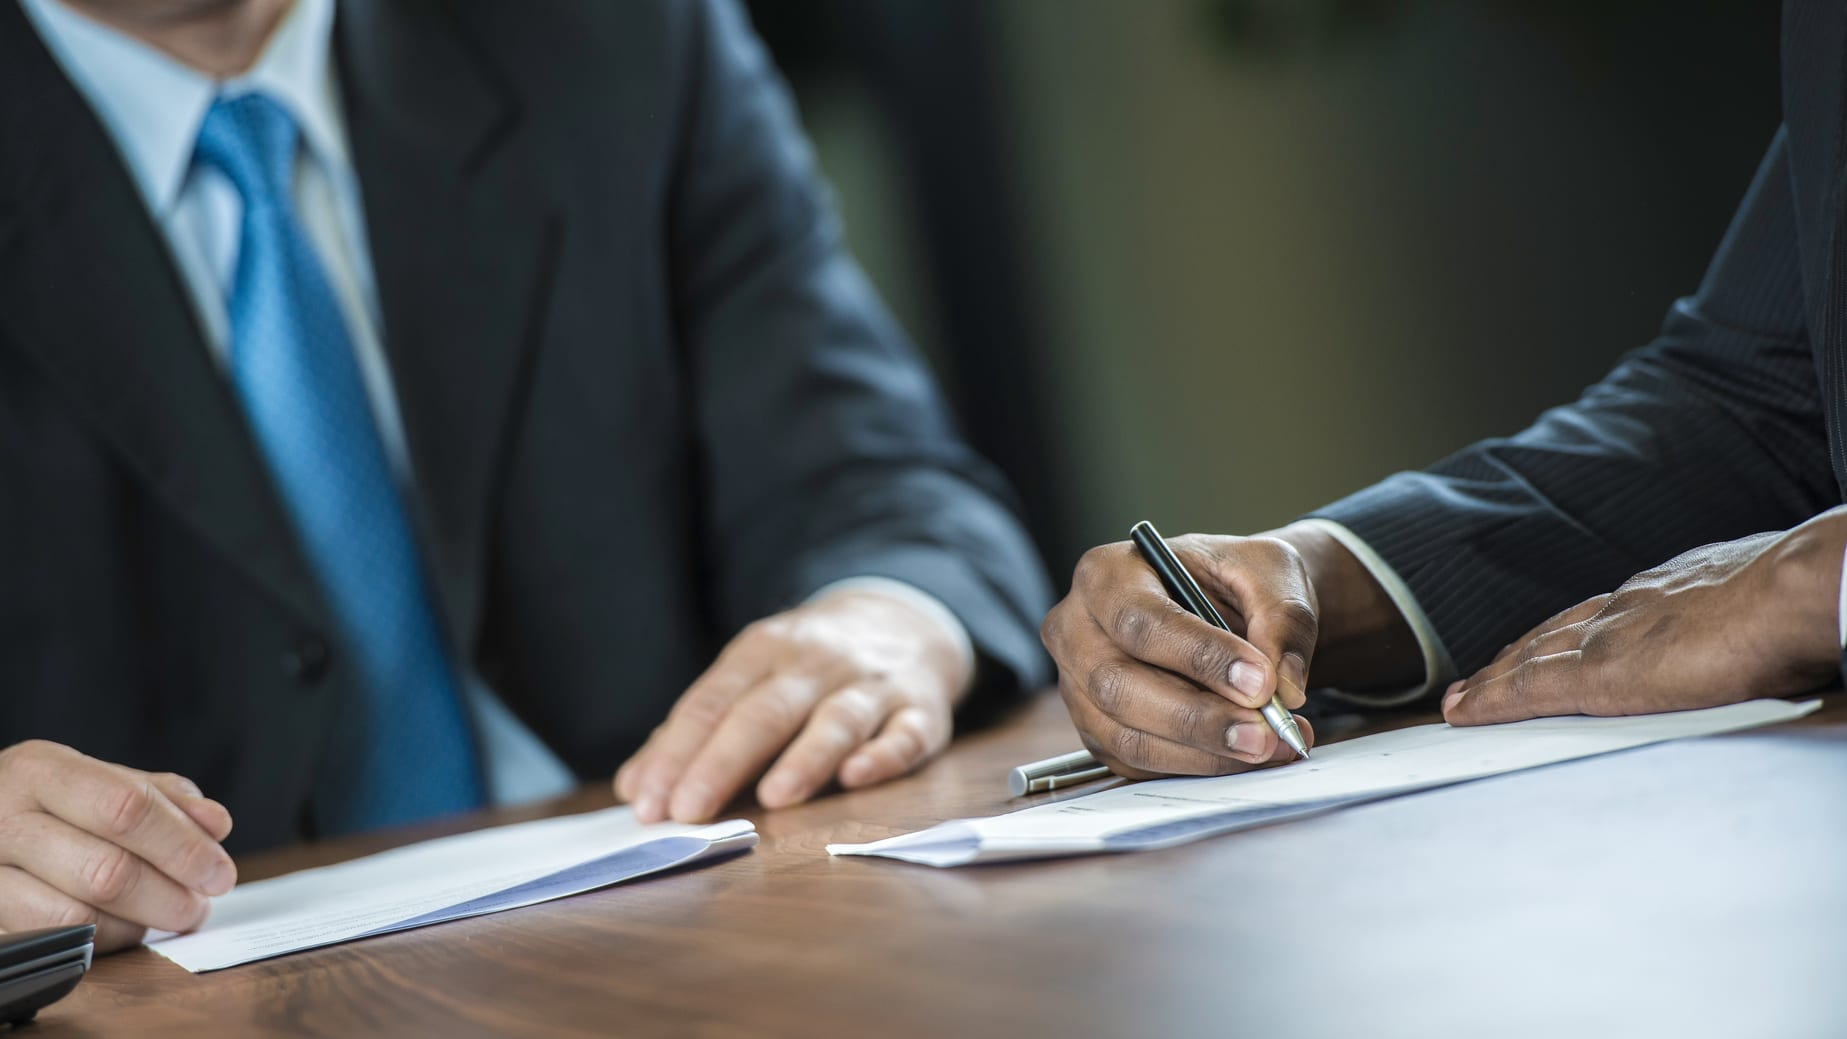 Attorney Advising Client To Sign Legal Document Stock Photo